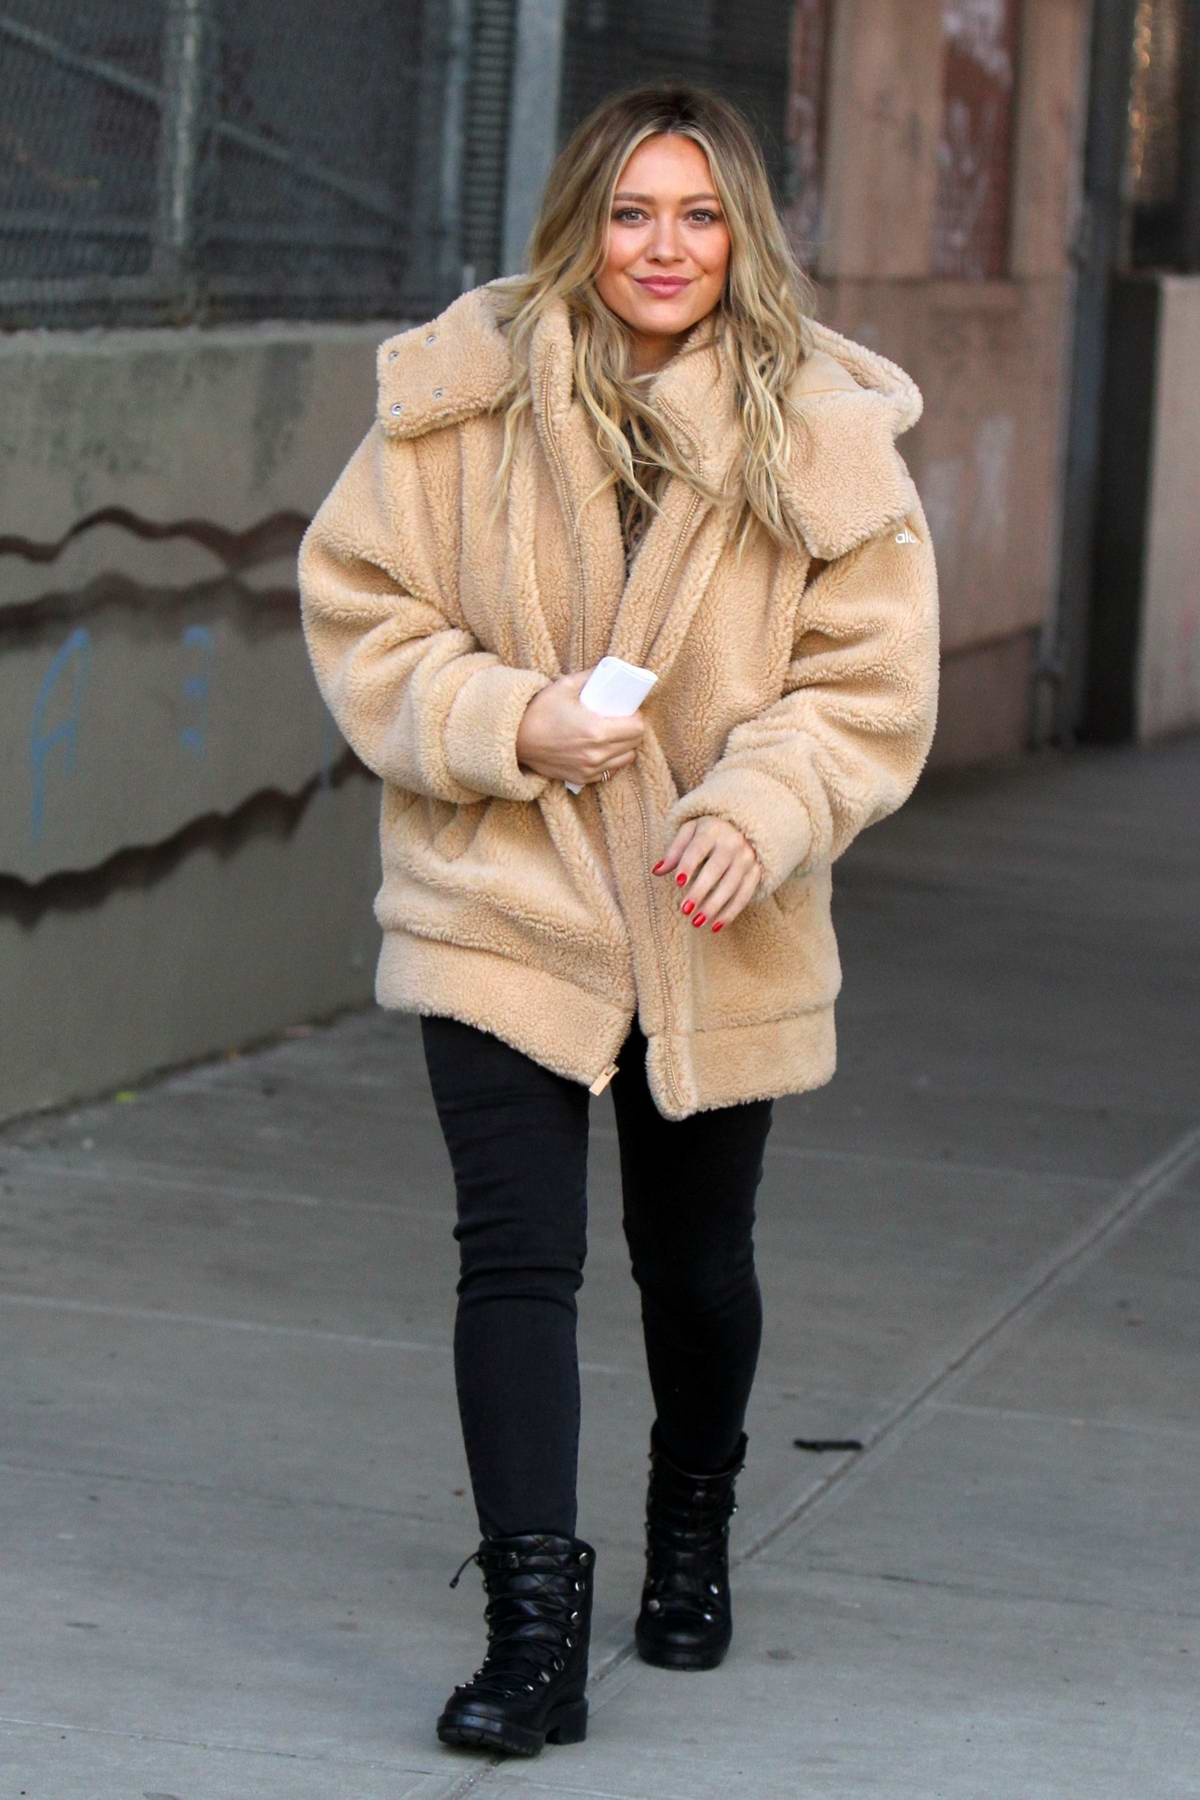 Hilary Duff spotted in multiple outfits while filming for her TV show 'Younger' in New York City